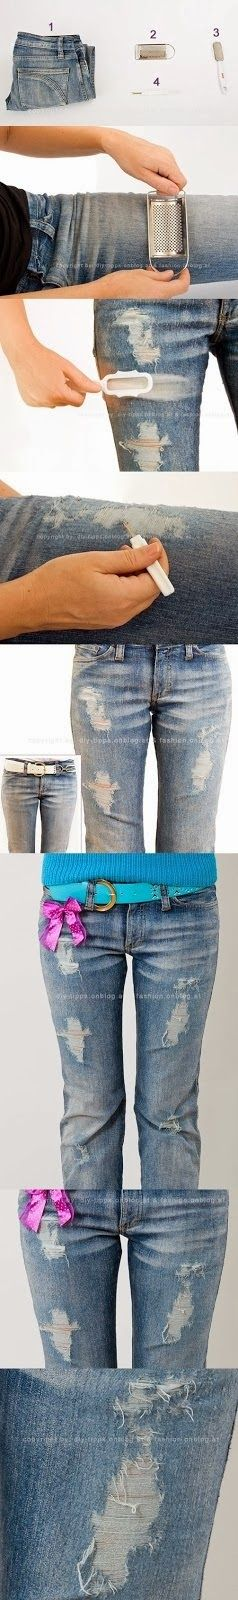 Easy DIY Crafts: Just in case I ever want to distress jeans